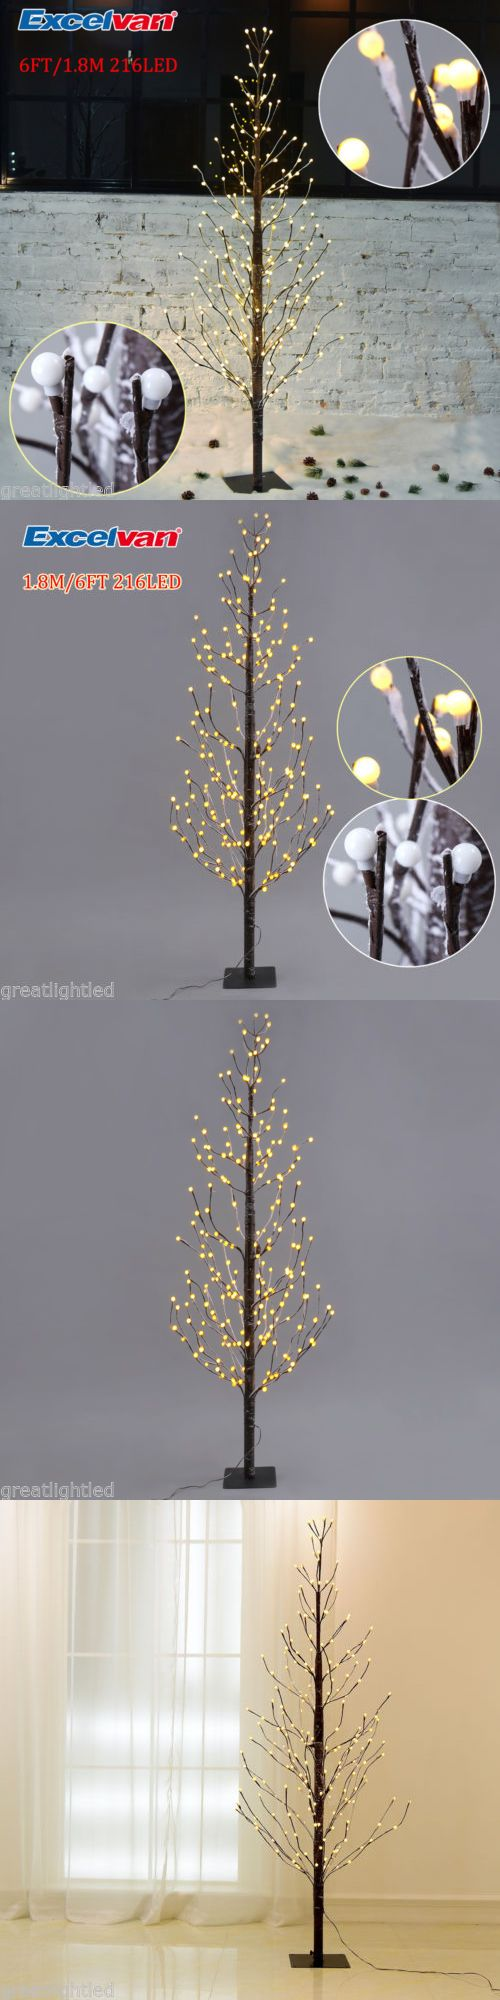 Artificial Christmas Trees 117414: 6Ft Pre-Lit Lighted Twig Branches Tree Lights Lamp 216 Led Frosted Balls Outdoor -> BUY IT NOW ONLY: $35.99 on eBay!